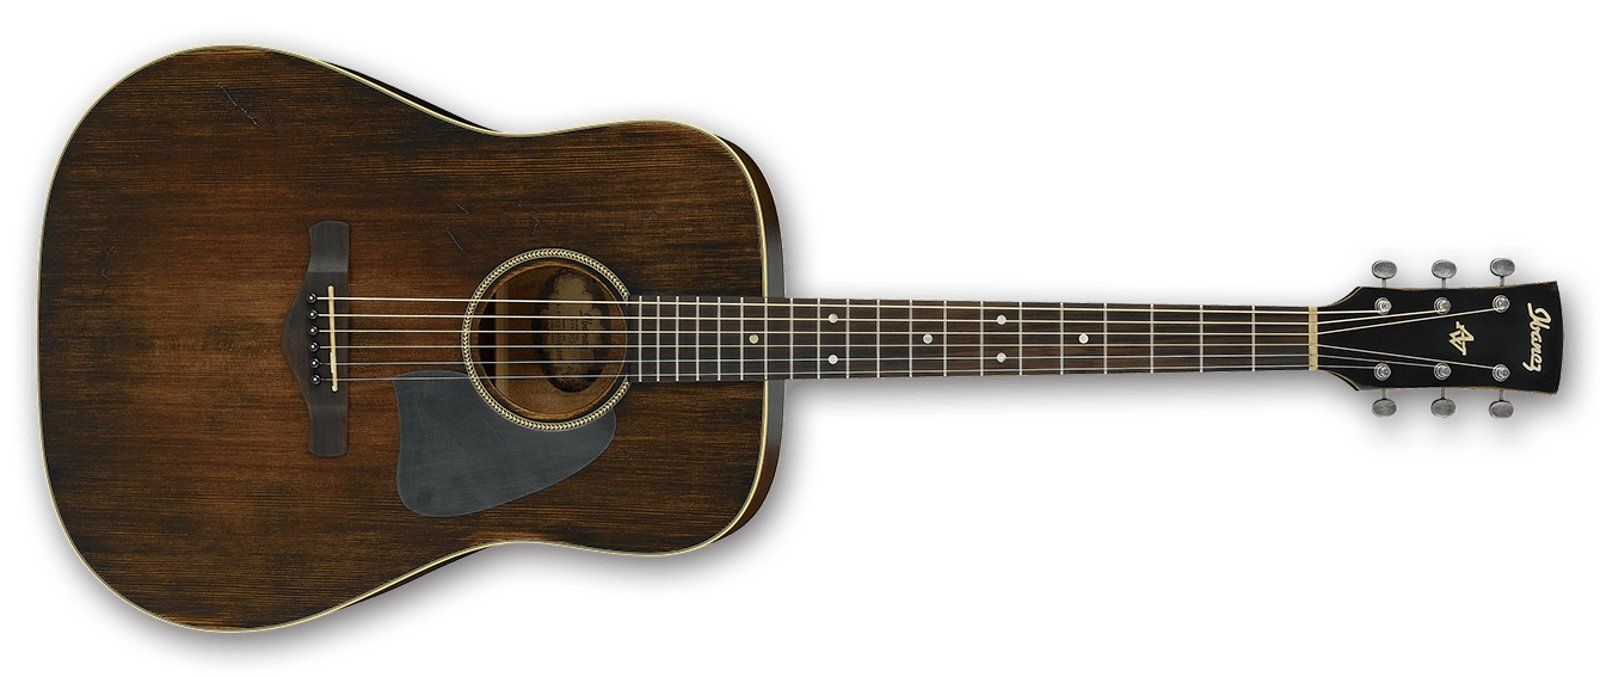 Artwood Vintage Acoustic Guitar with Distressed Tobacco Sunburst Finish